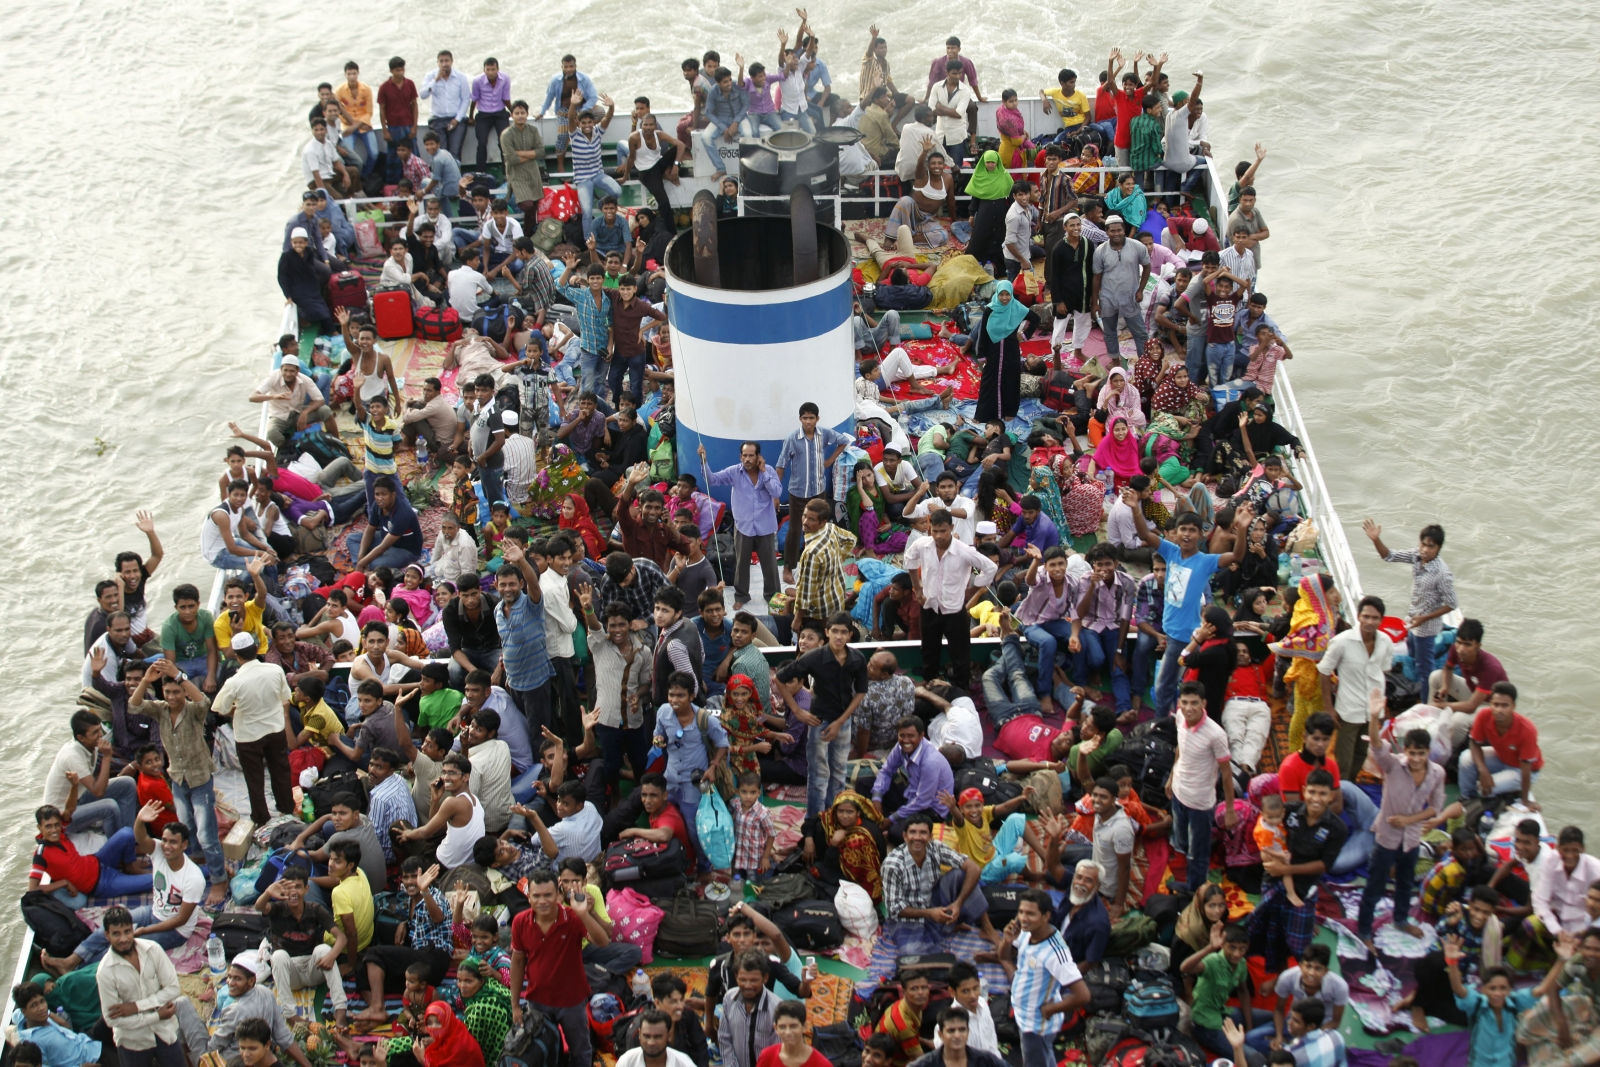 Bangladesh boat capsize tragedy